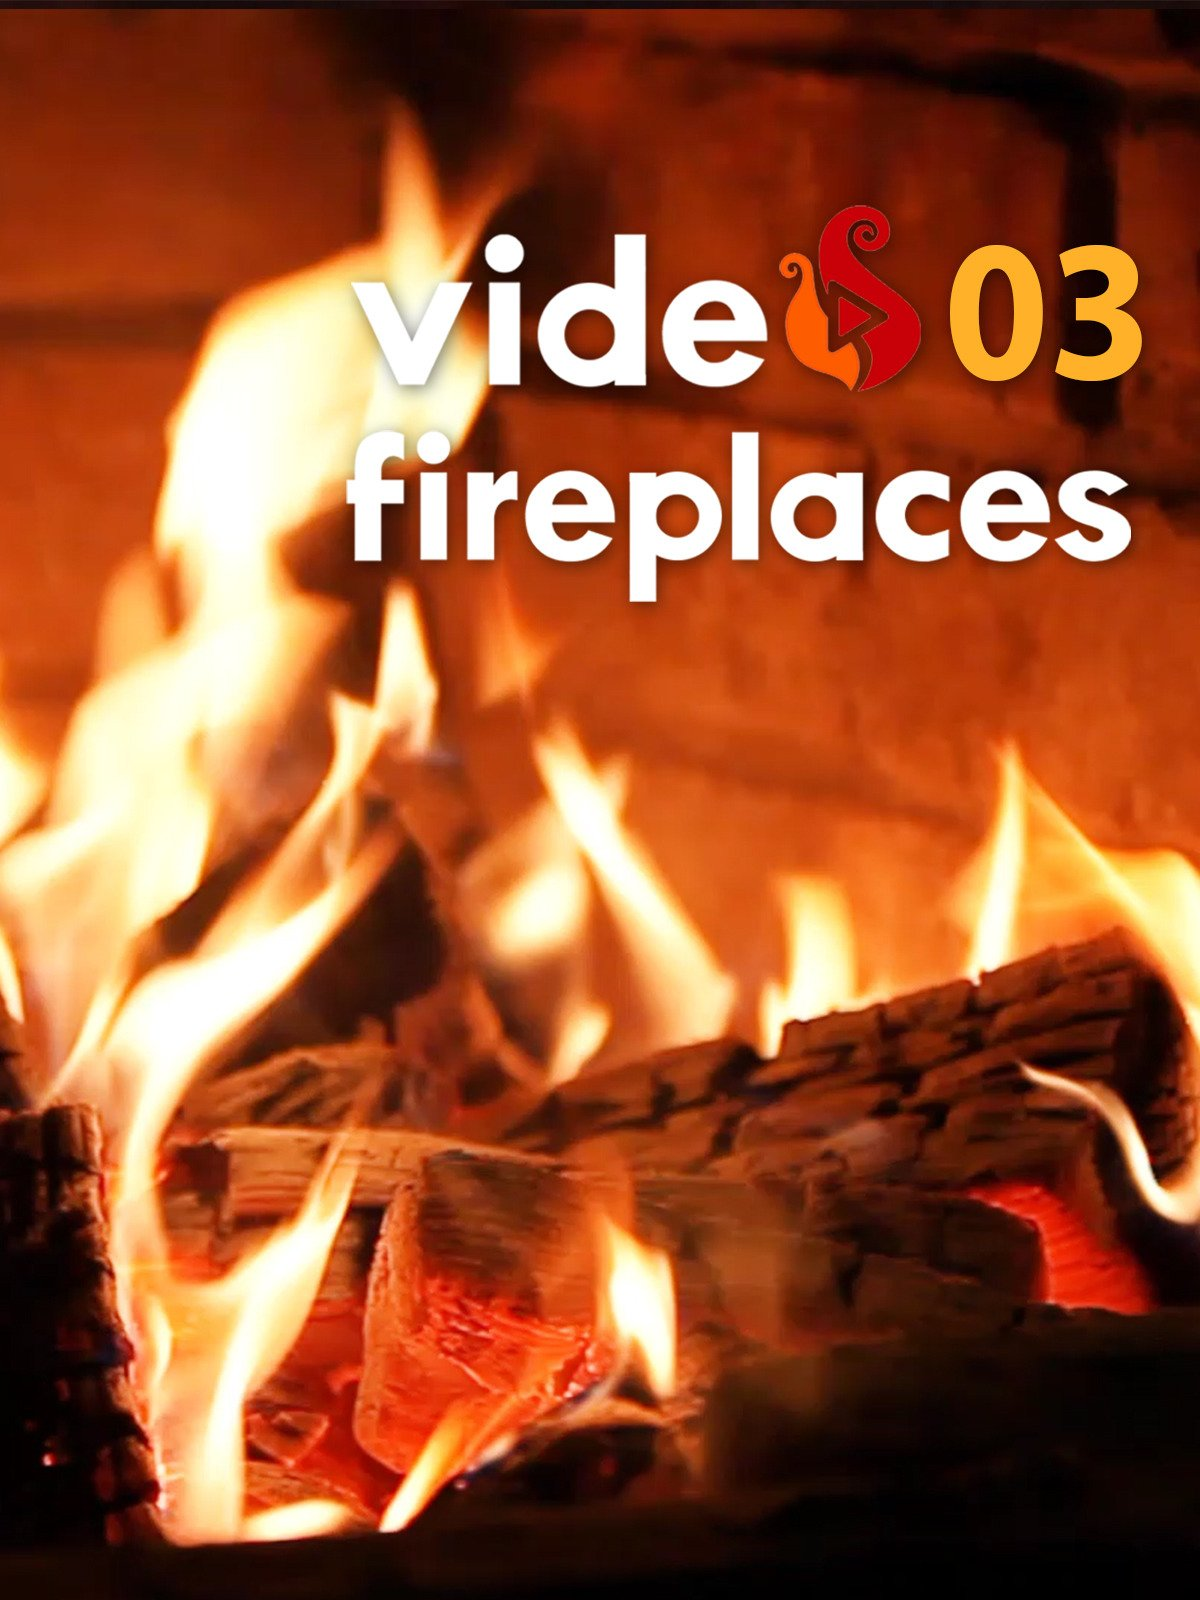 Video Fireplace 03